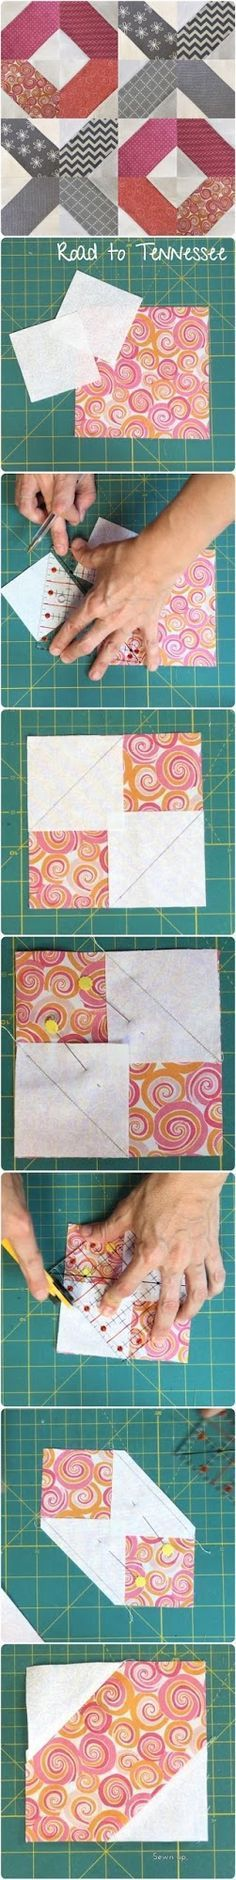 Road to Tennessee block - quick and easy modern block and quilts - tutorial